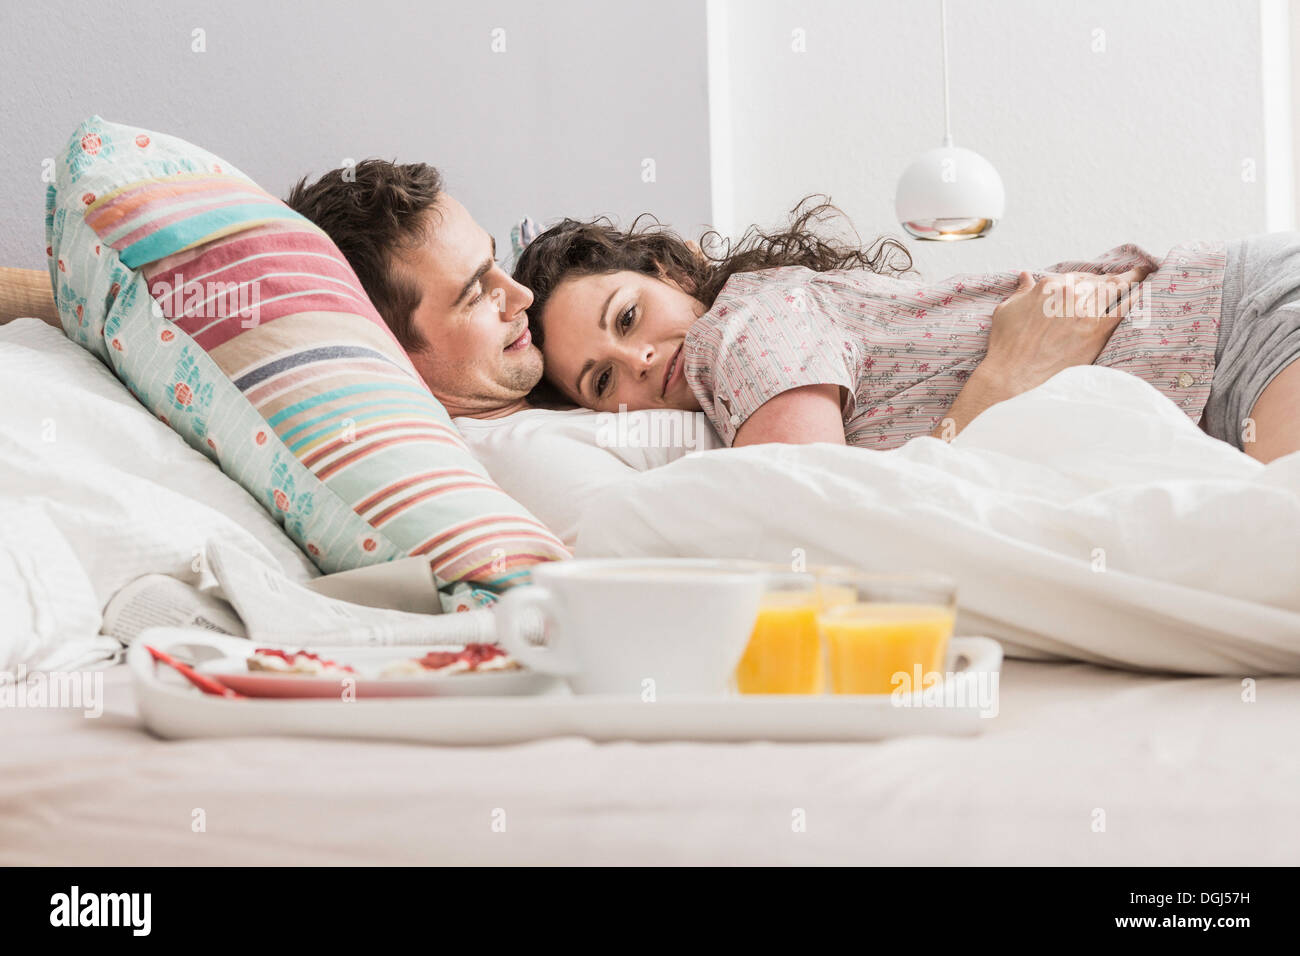 Mid adult couple lying in bed, breakfast on tray, hugging - Stock Image